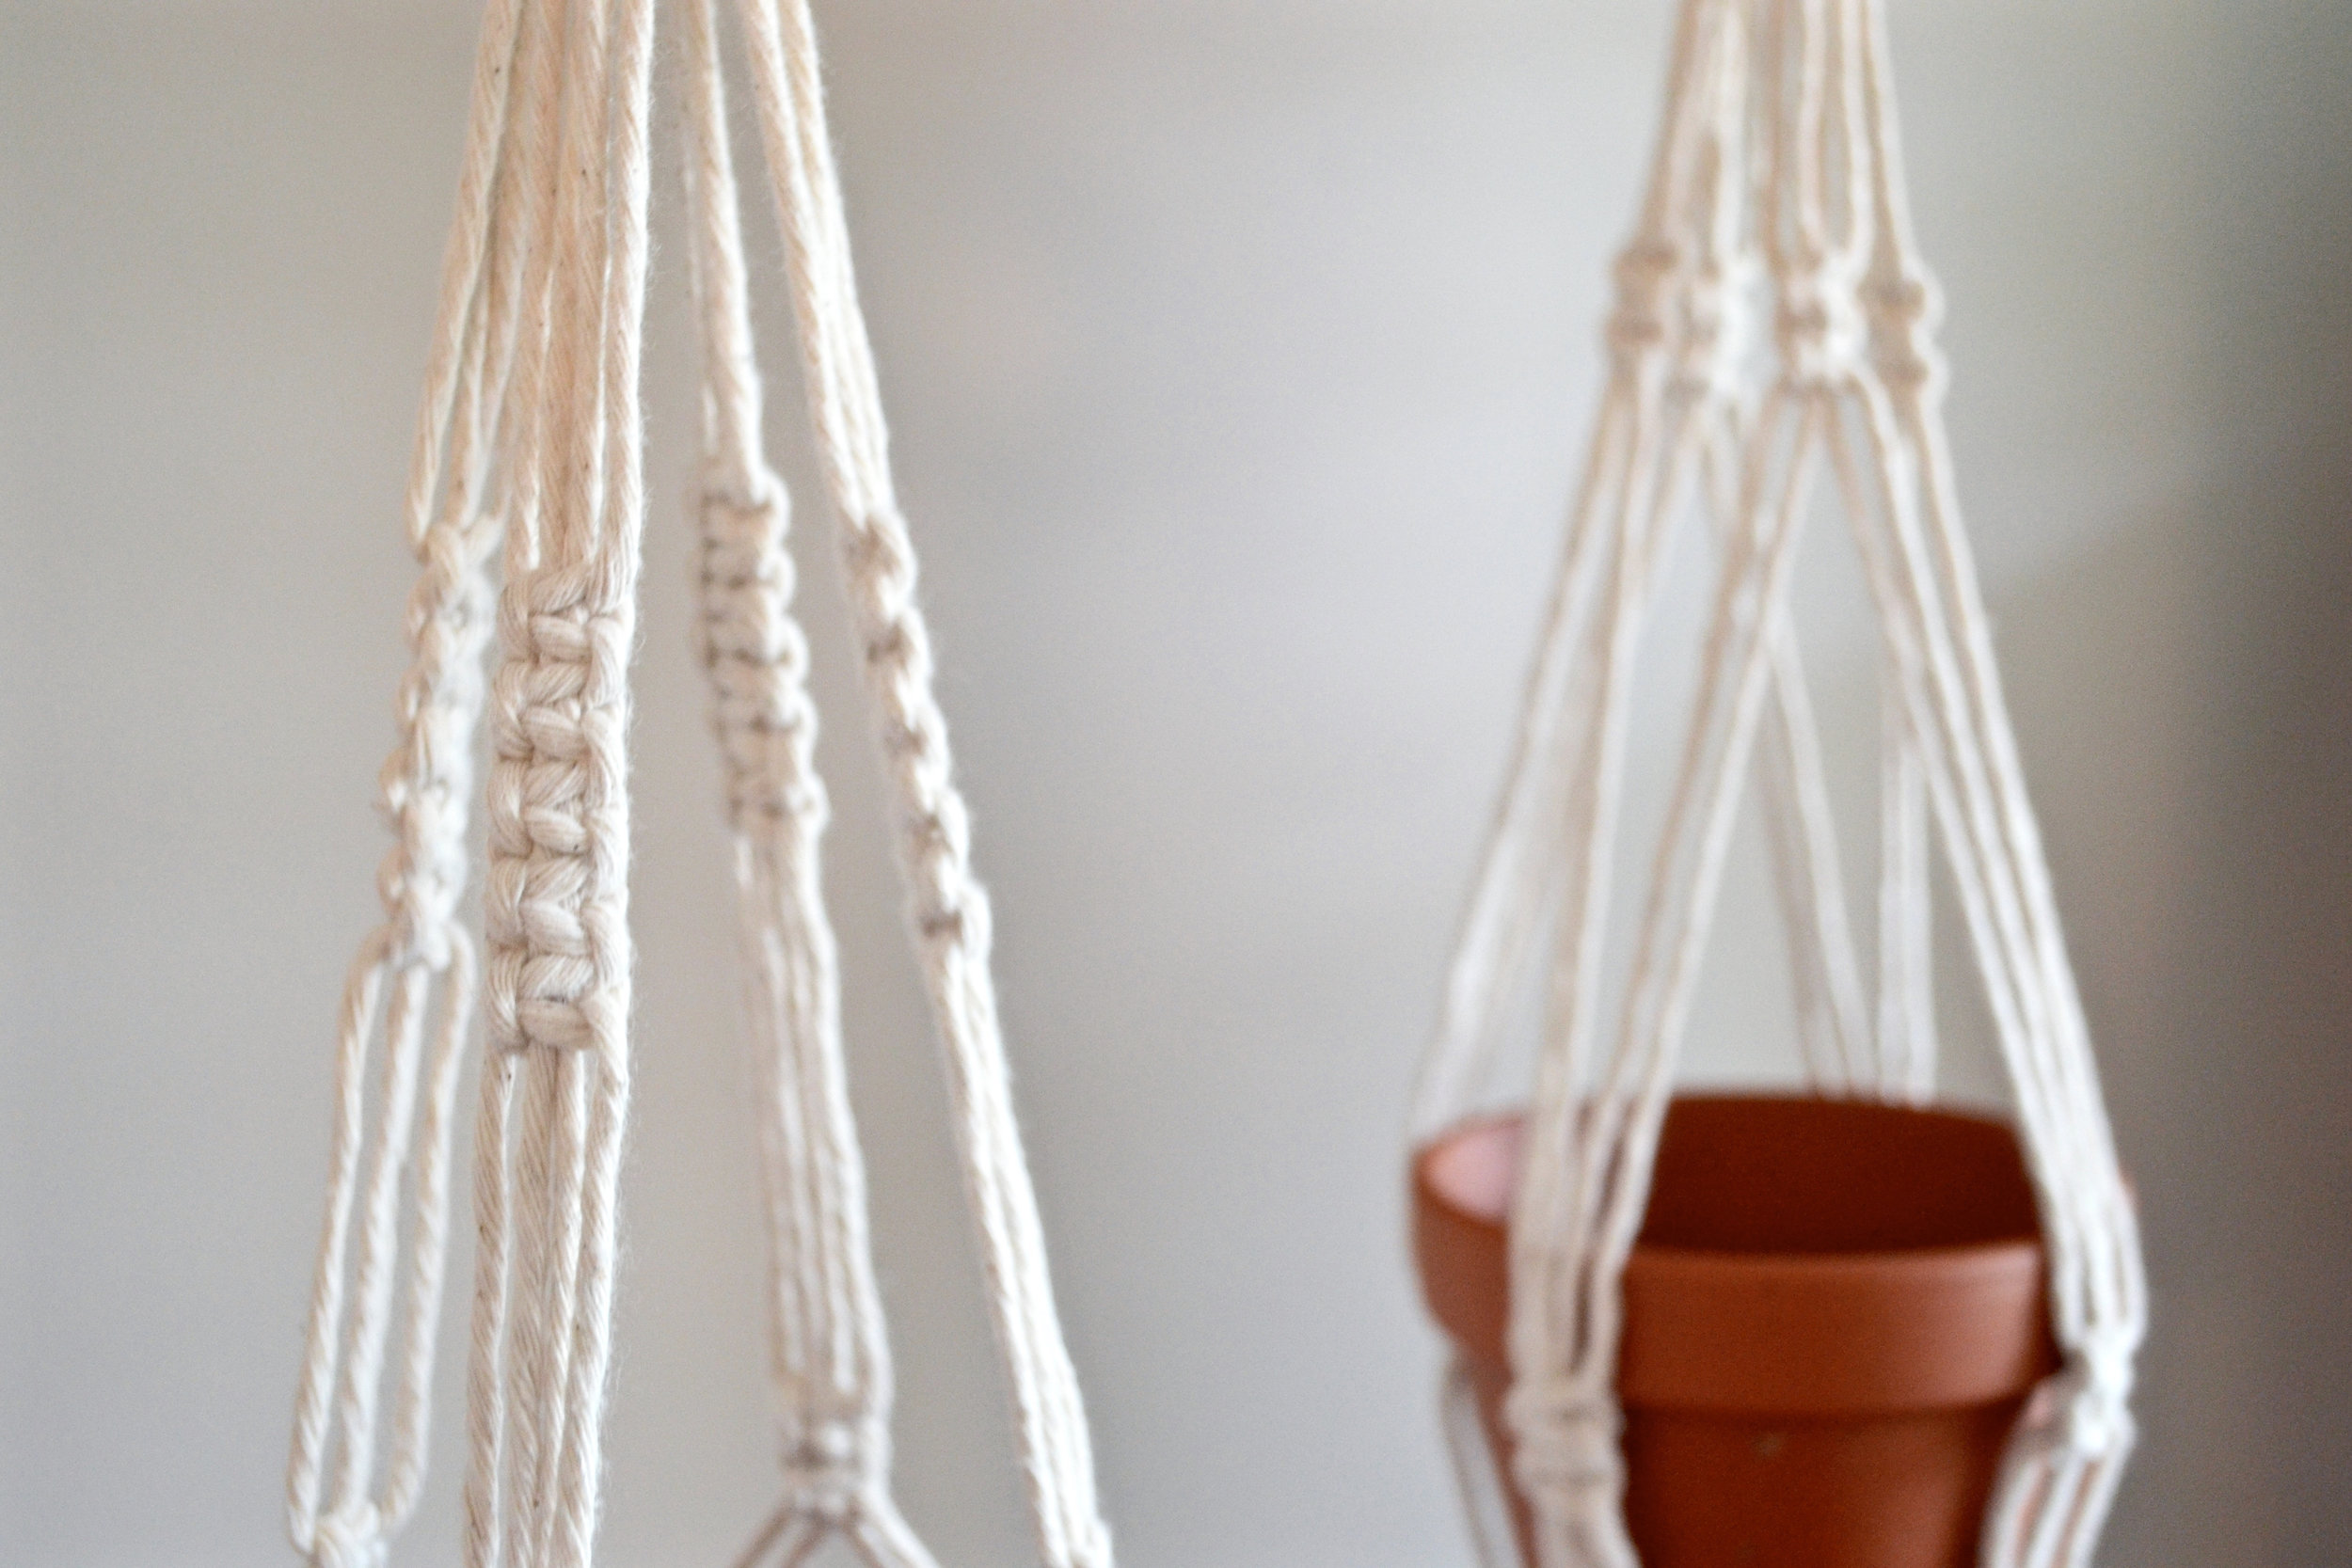 Small minimalist plant hangers - 14 inches long - available for purchase, $30 each (made to order)